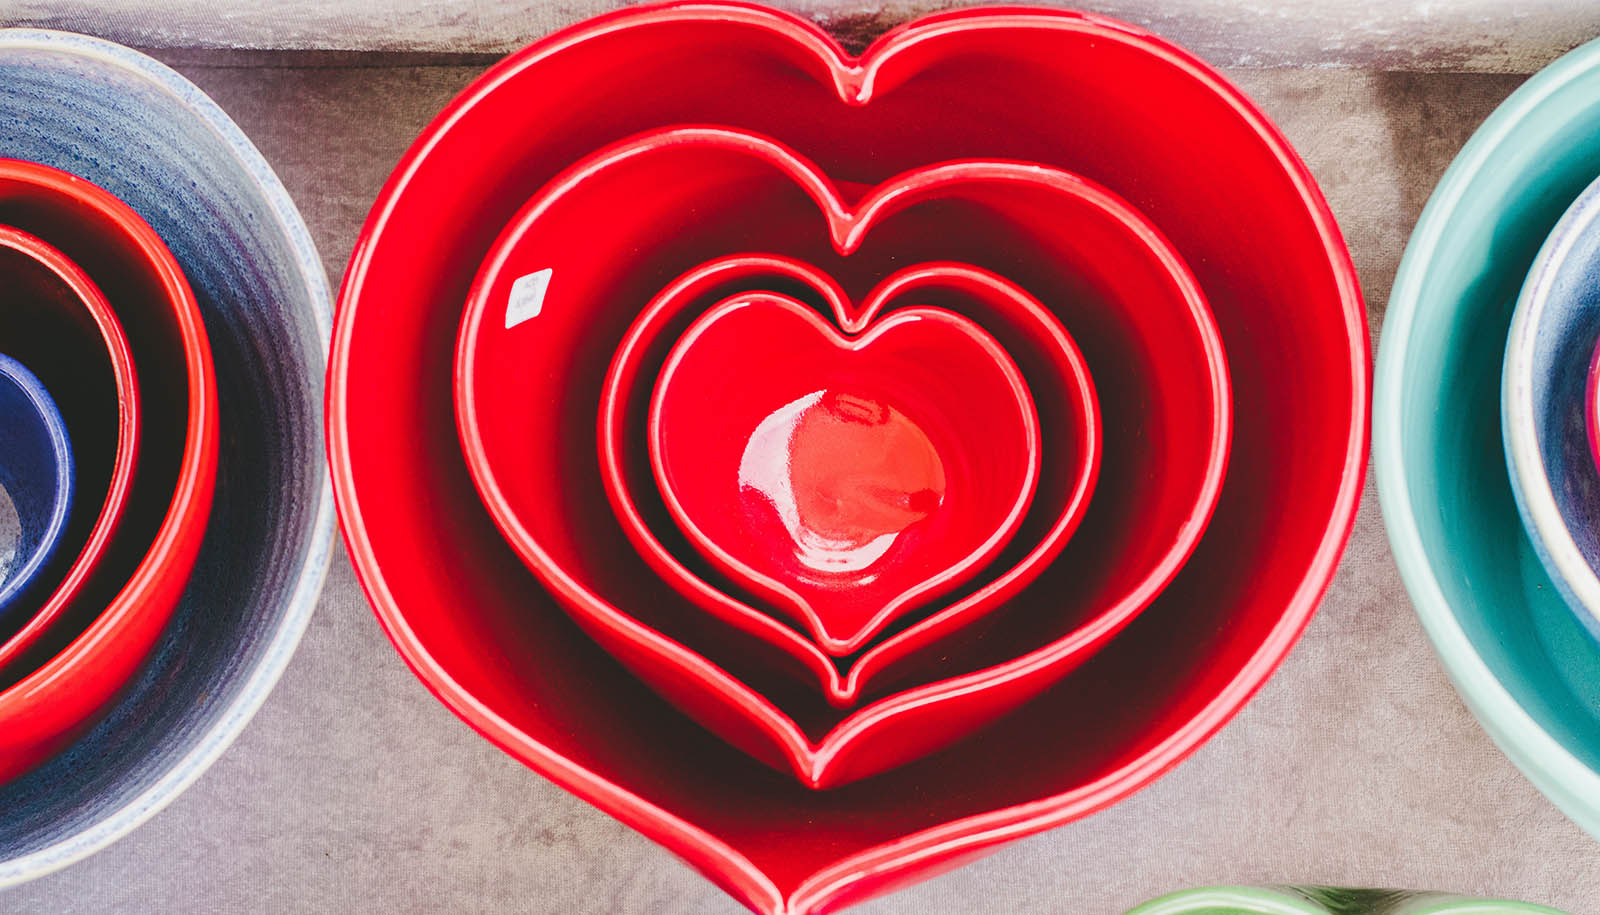 How to rebuild heart's layers with stem cells